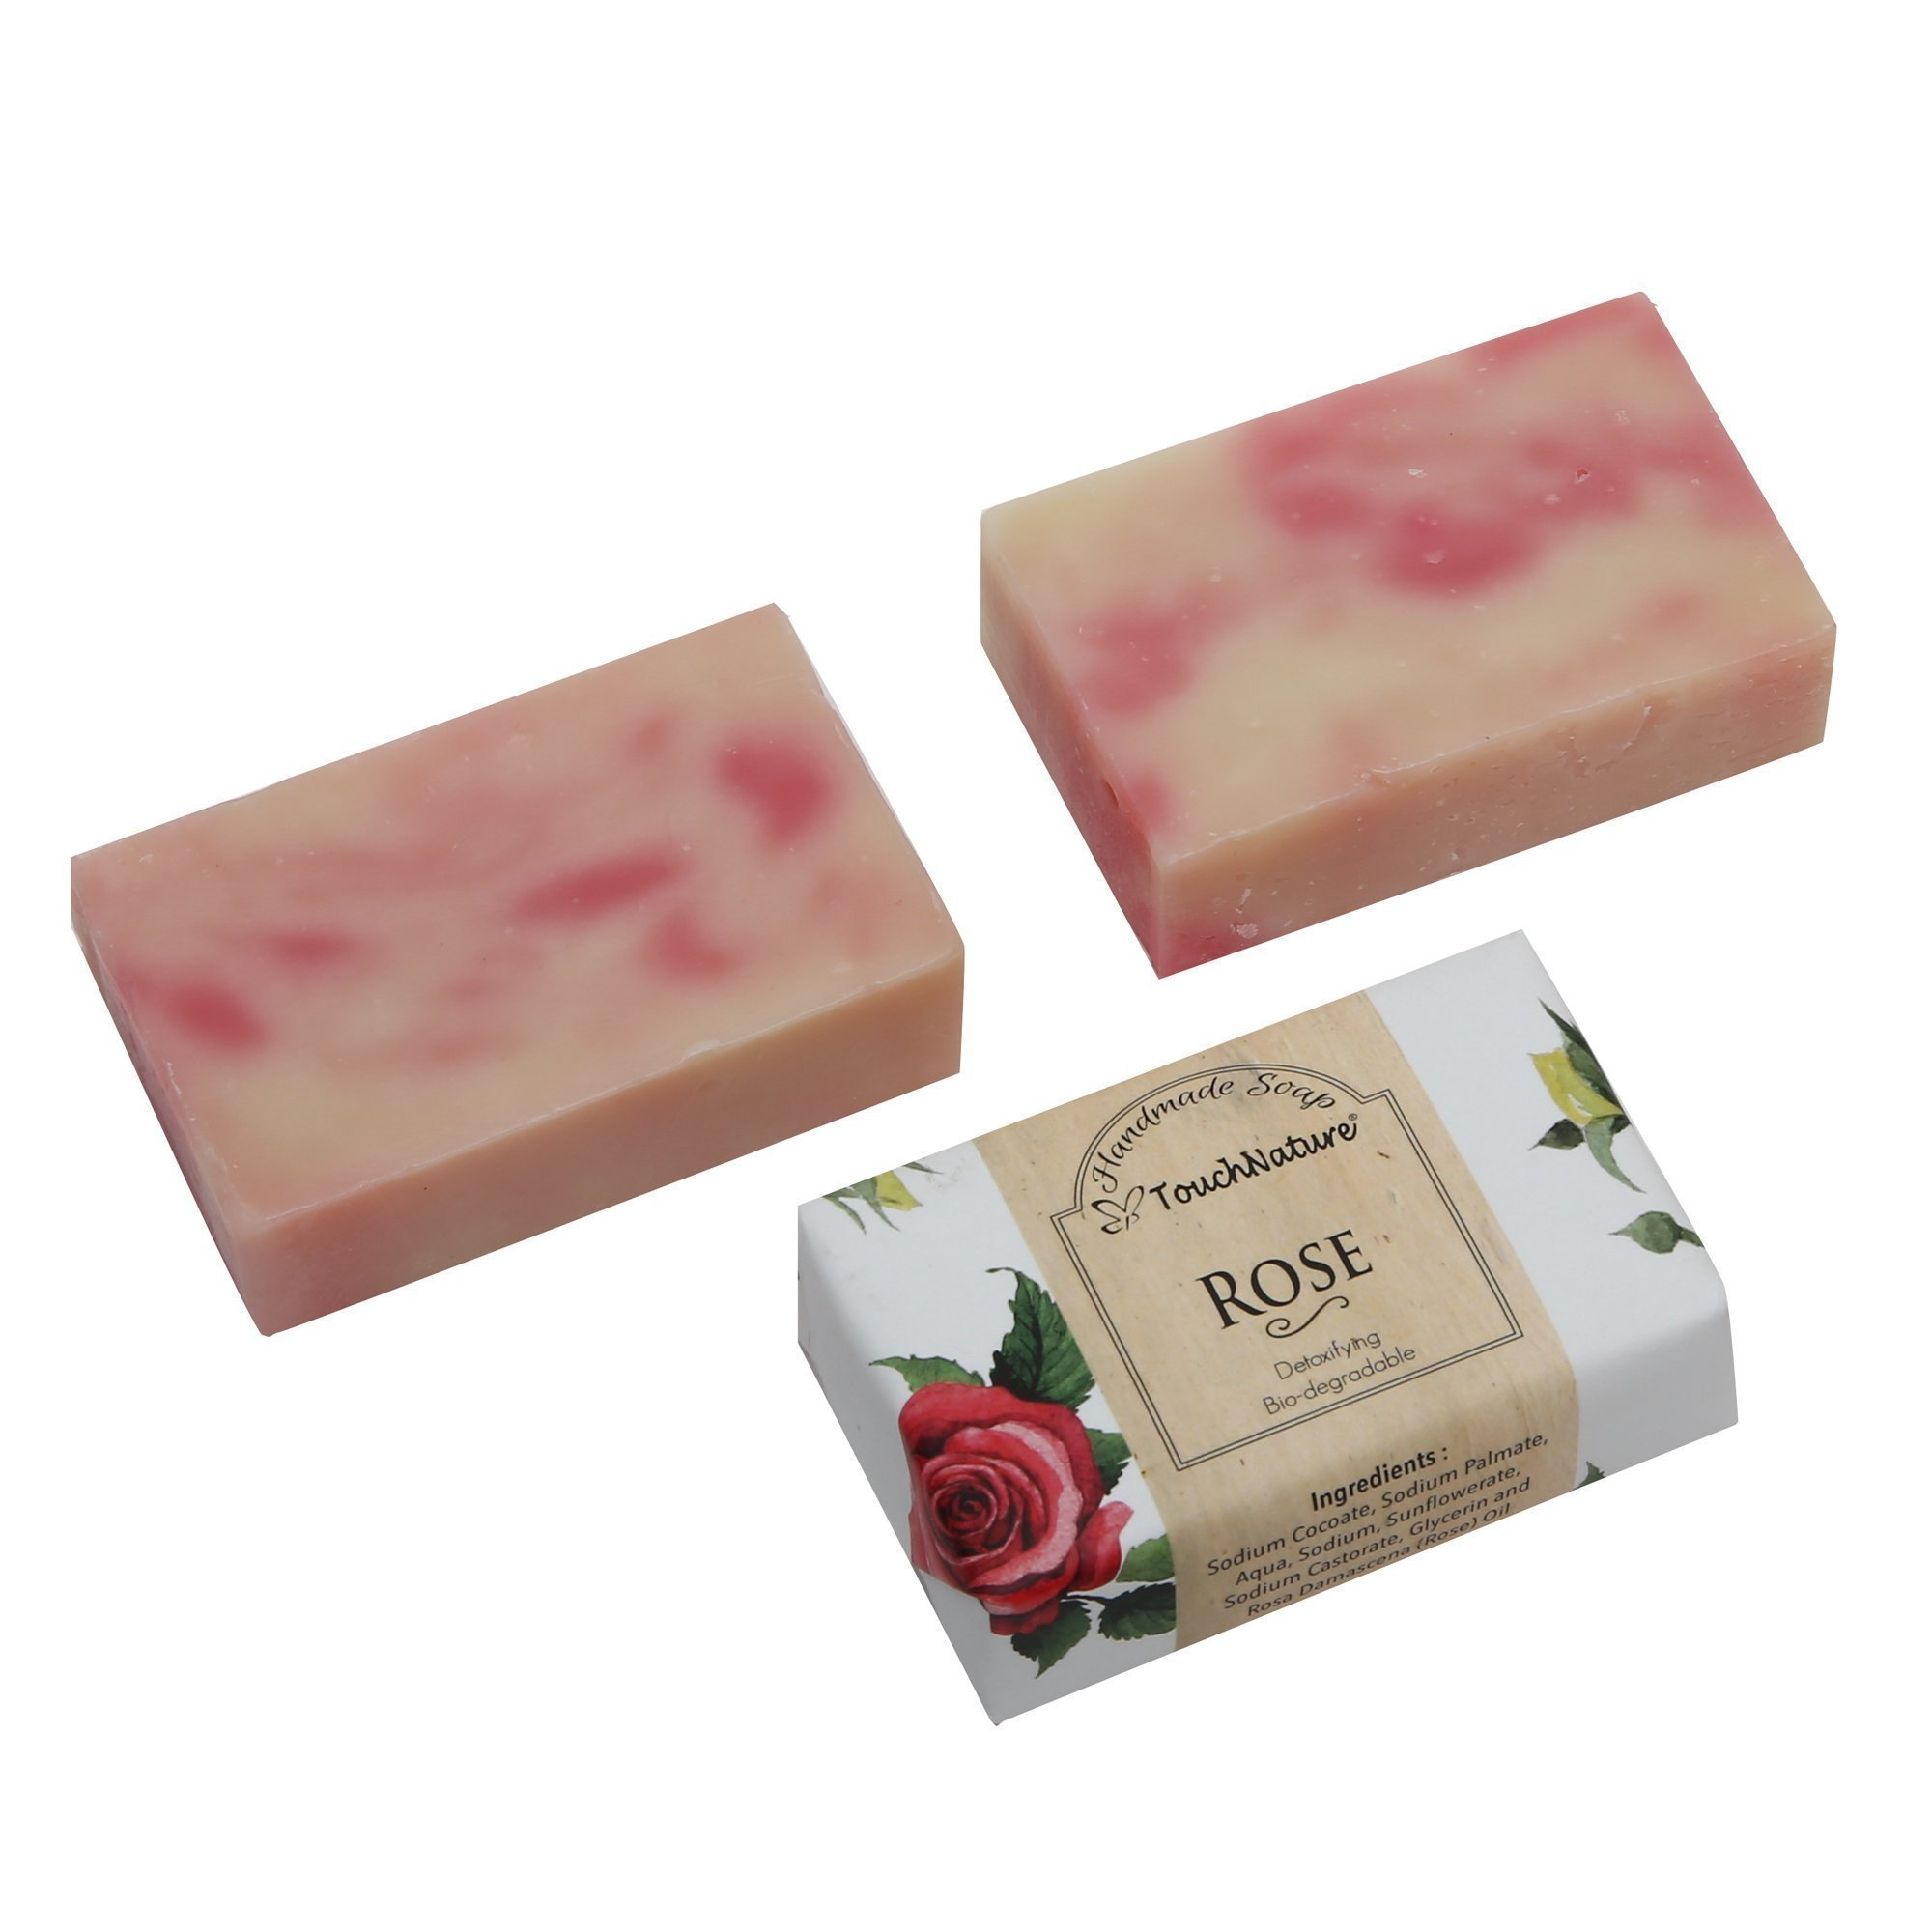 2 pieces 100gm Rose Oil Natural Soap. Free of SLS, SLES, Parabens and carcinogenic ingredients.100% bio-degradable and detoxifying. Moiisturizing, Rejunvenating